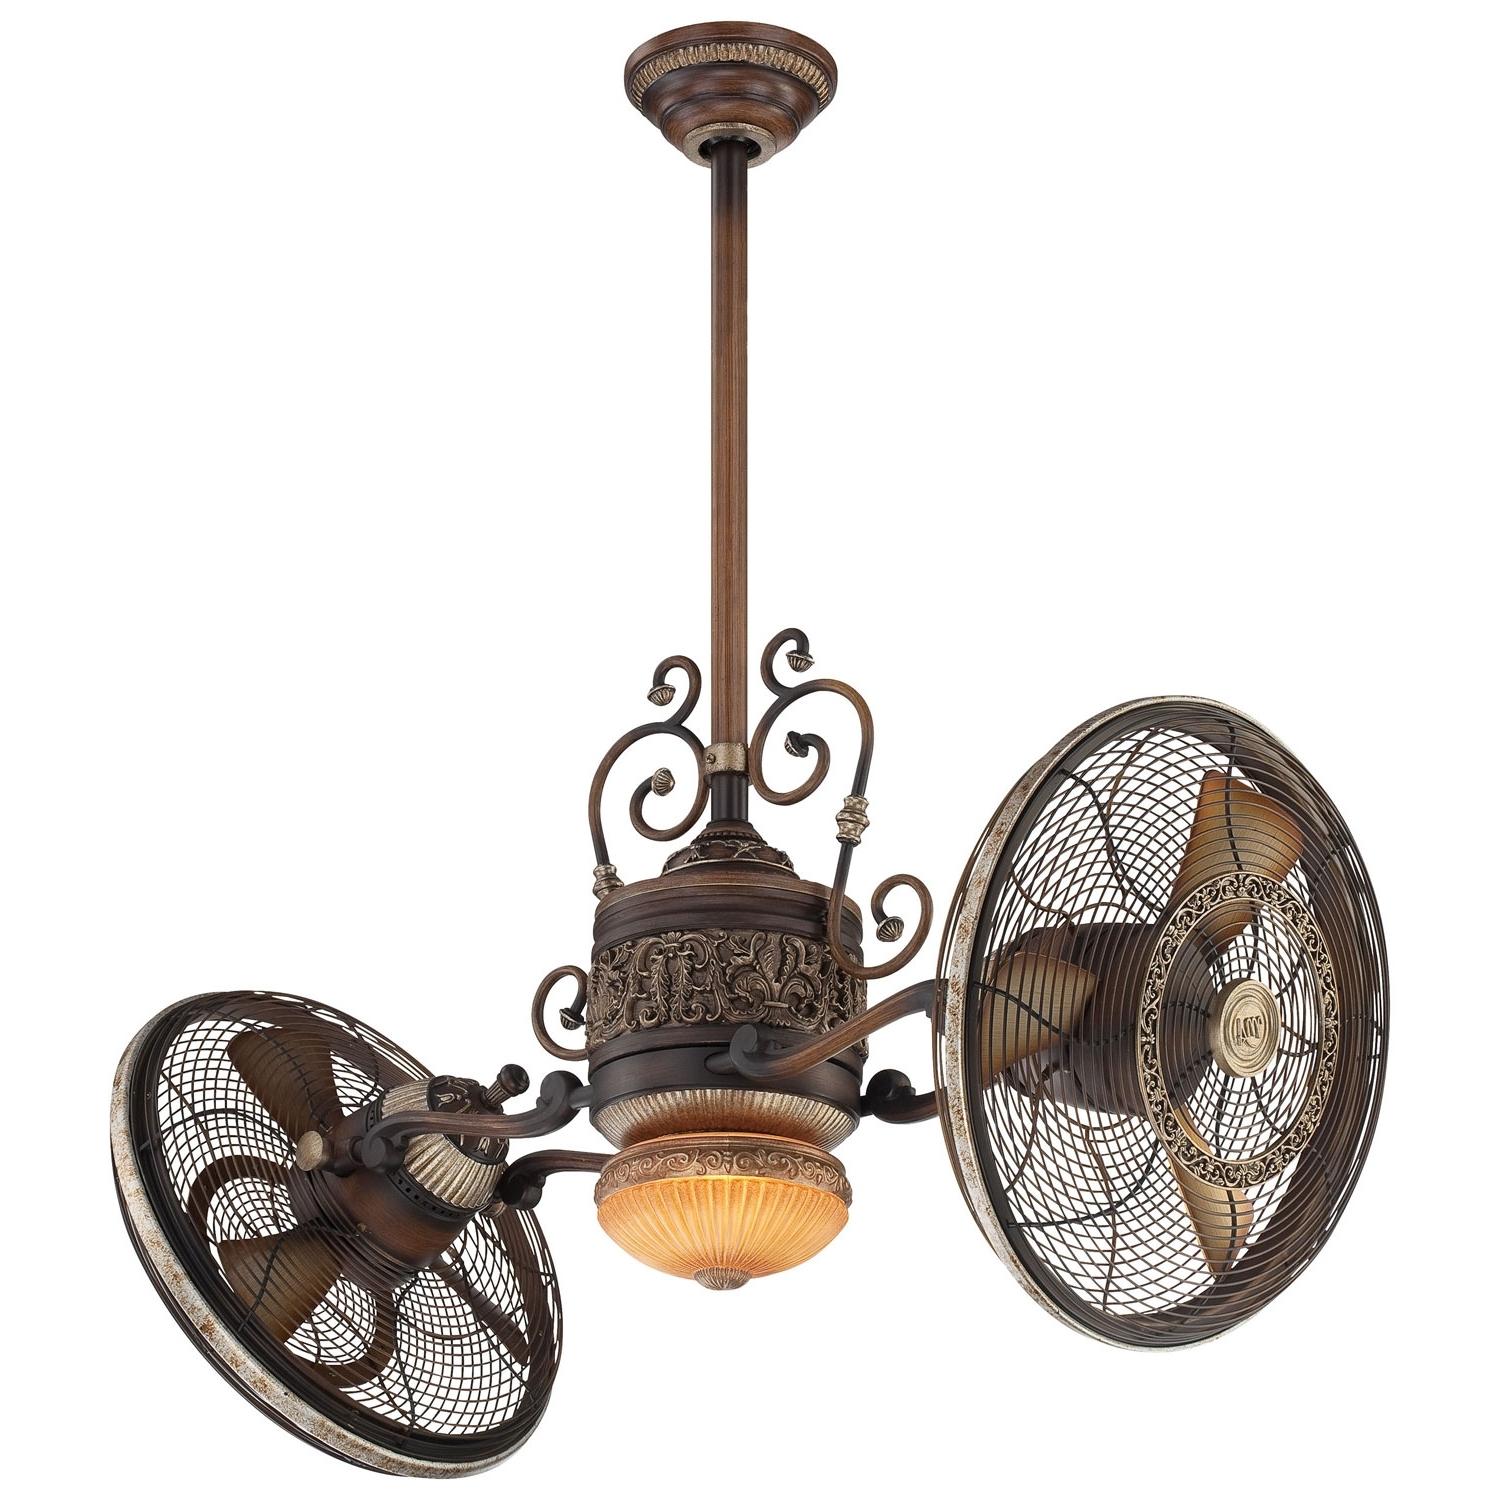 Minka Aire 42 Inch Traditional Gyro Belcaro Walnut Ceiling Fan F502 Pertaining To Current Traditional Outdoor Ceiling Fans (View 7 of 20)